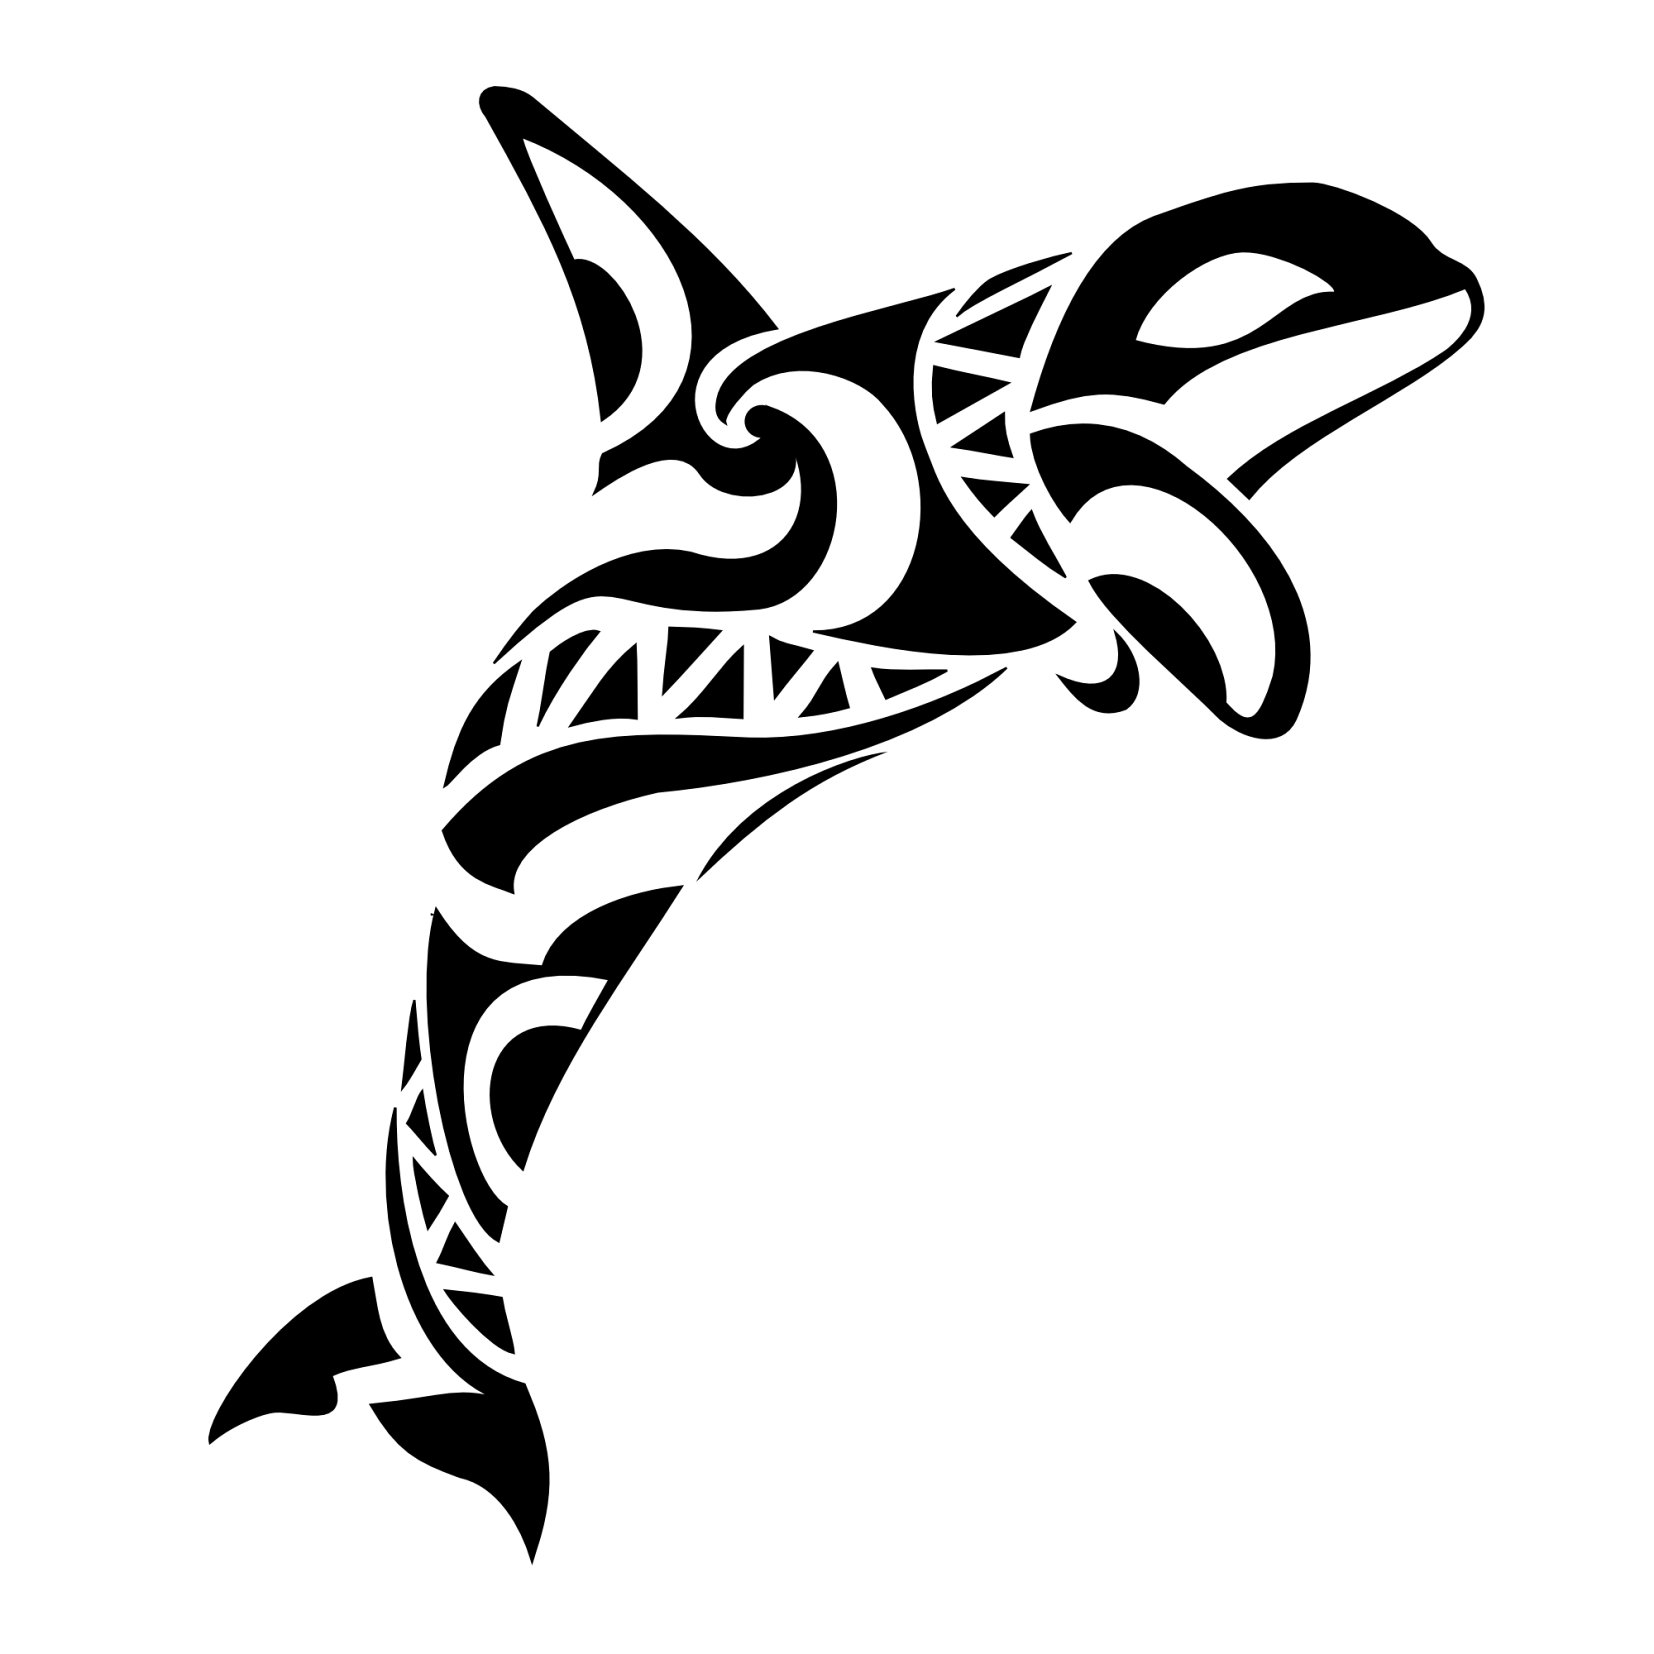 Orca clipart tribal Http://www Designs tattootribes Whale Inuit